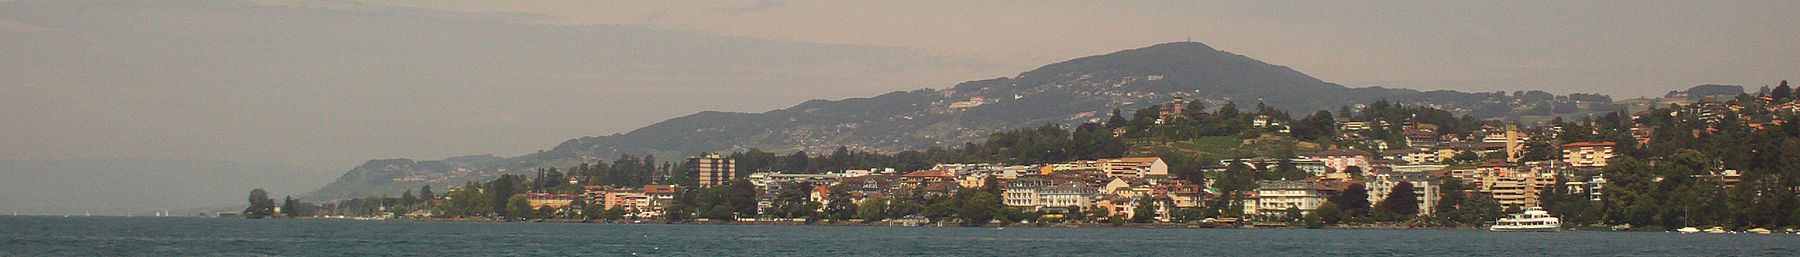 Montreux banner city view.jpg